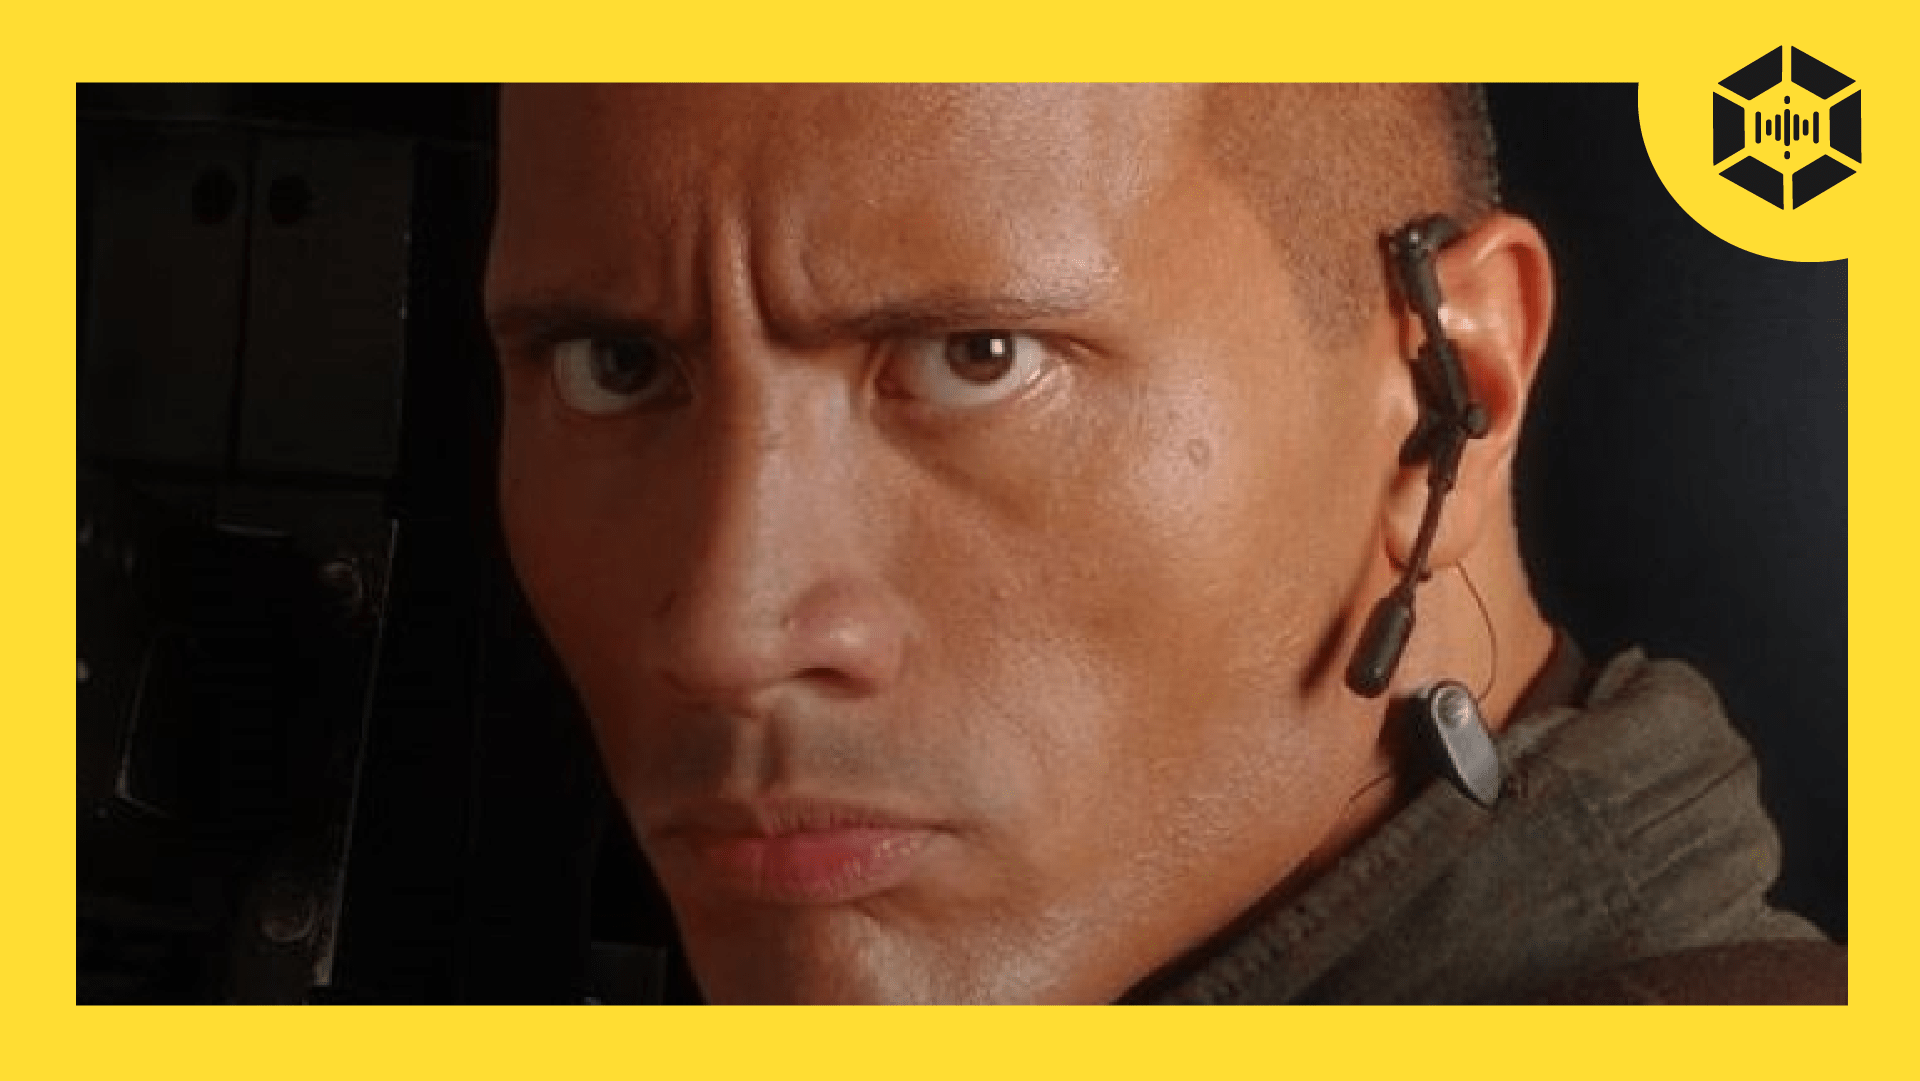 Podcast thumbnail featuring Dwayne Johnson from the DOOM movie facing the camera